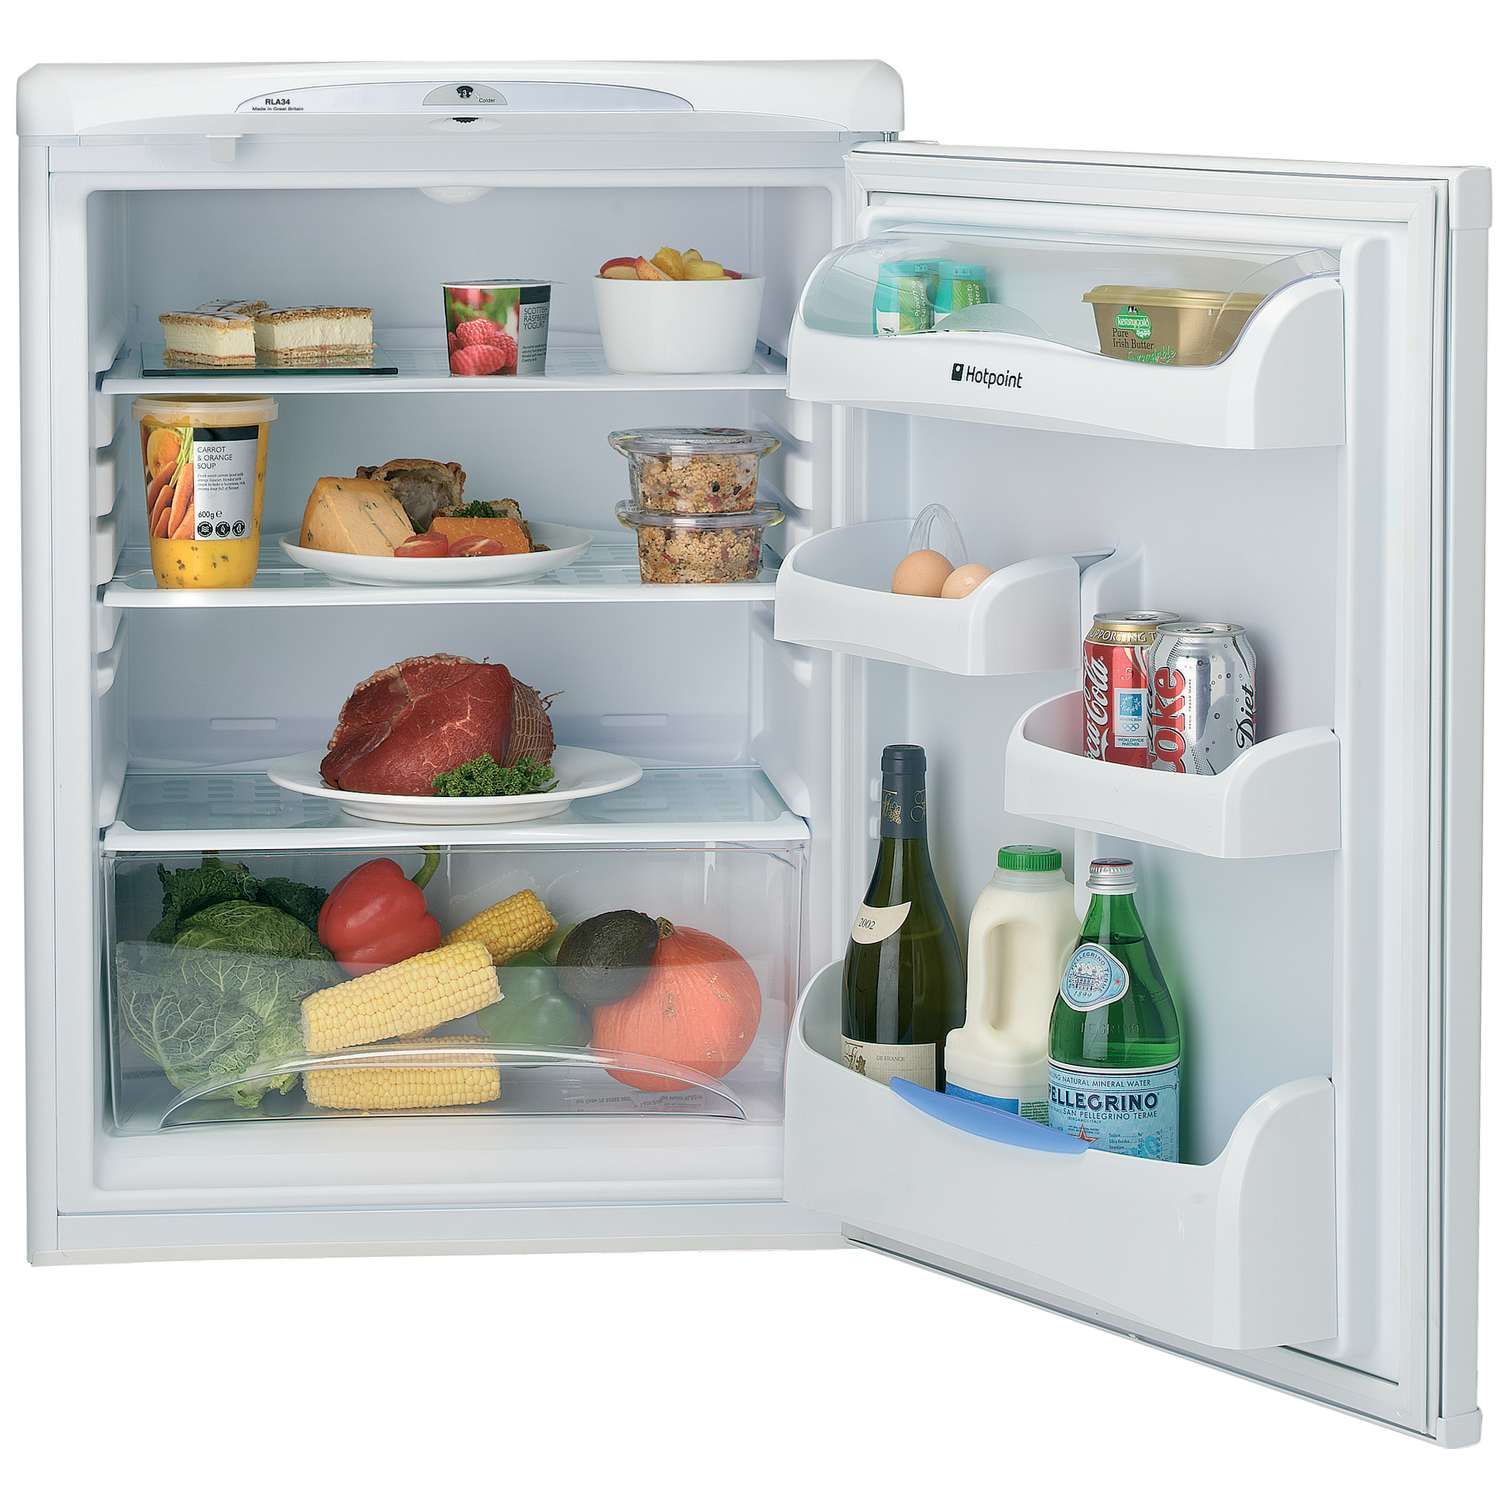 Kuche Bar Fridge Review Hotpoint Rla36p A 43 Rated 146 Litres Under Counter Larder